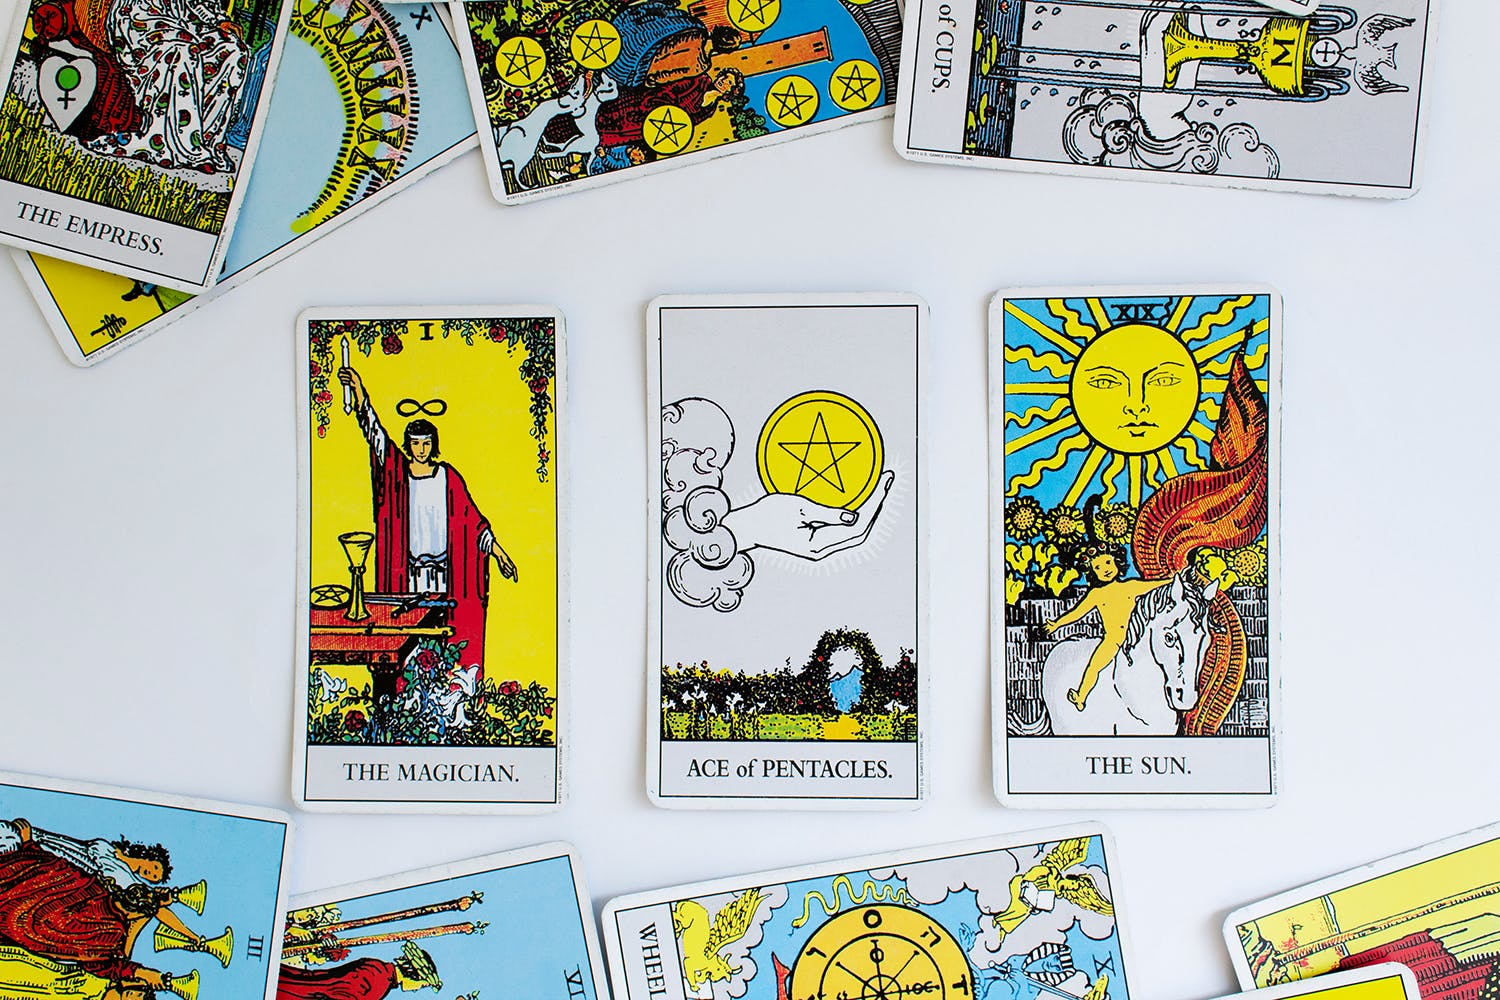 Photo of the Rider-Waite tarot deck spread out, with the magician, ace of pentacles, and the sun facing out.